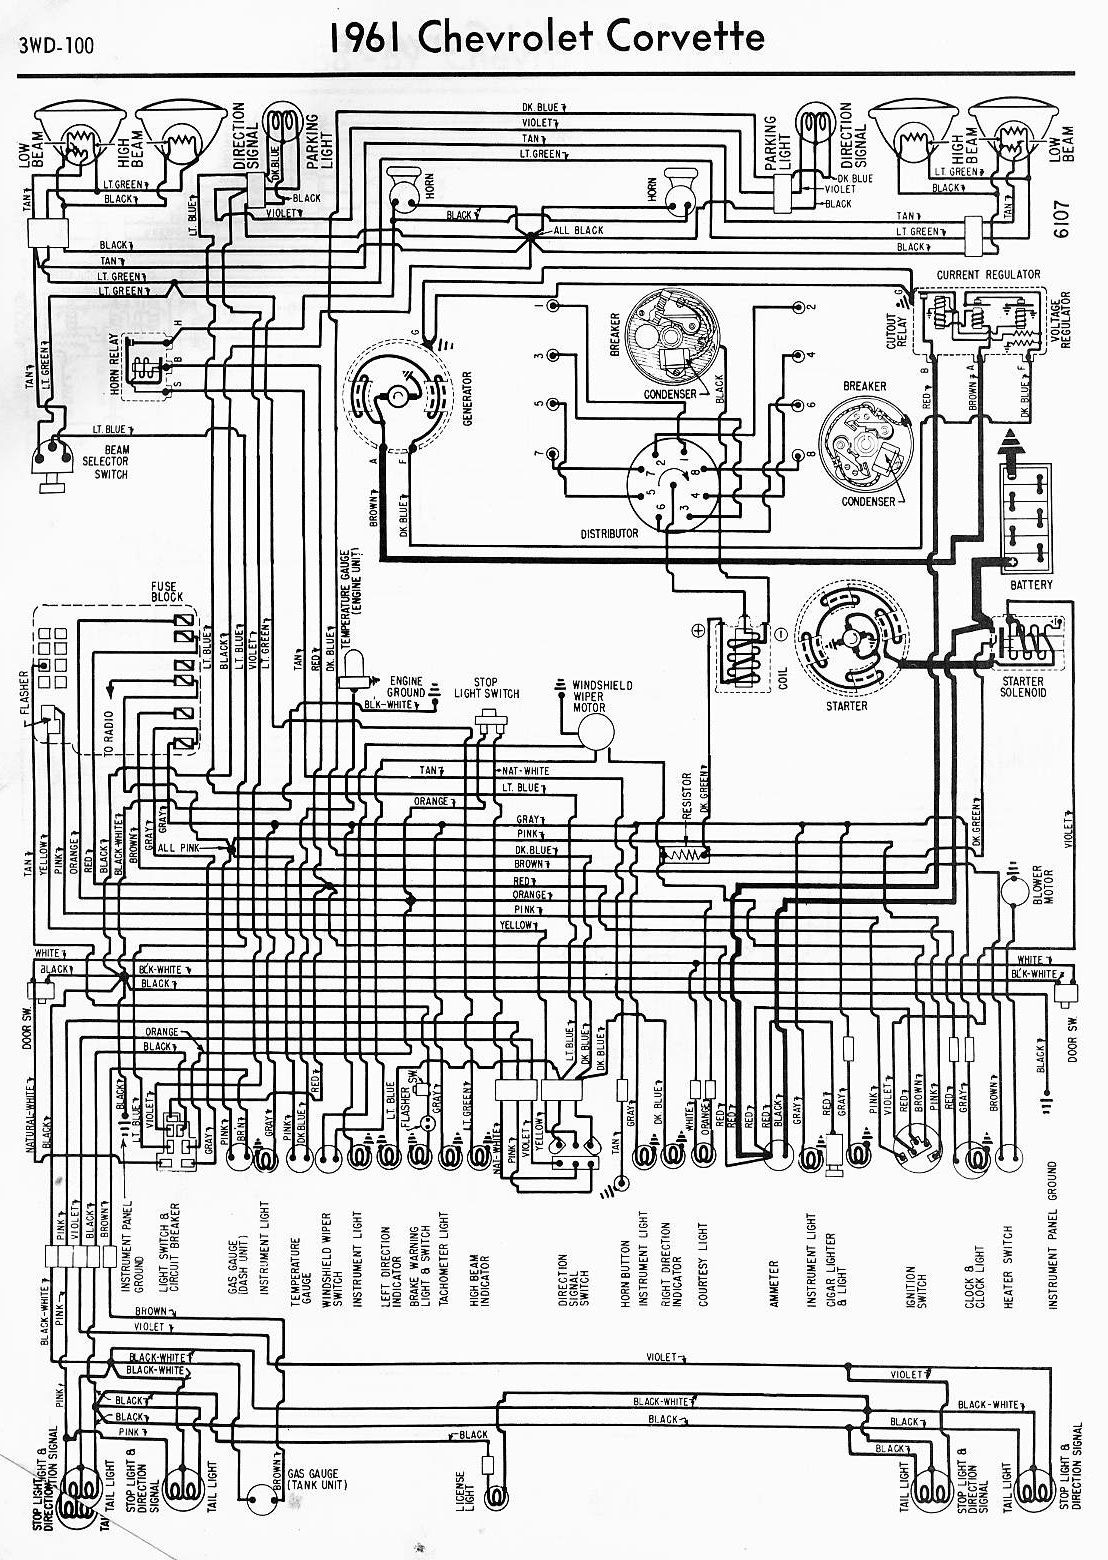 wiring diagram for 1979 chevy corvette wiring diagram information  1969 chevy corvette wiring diagram #6